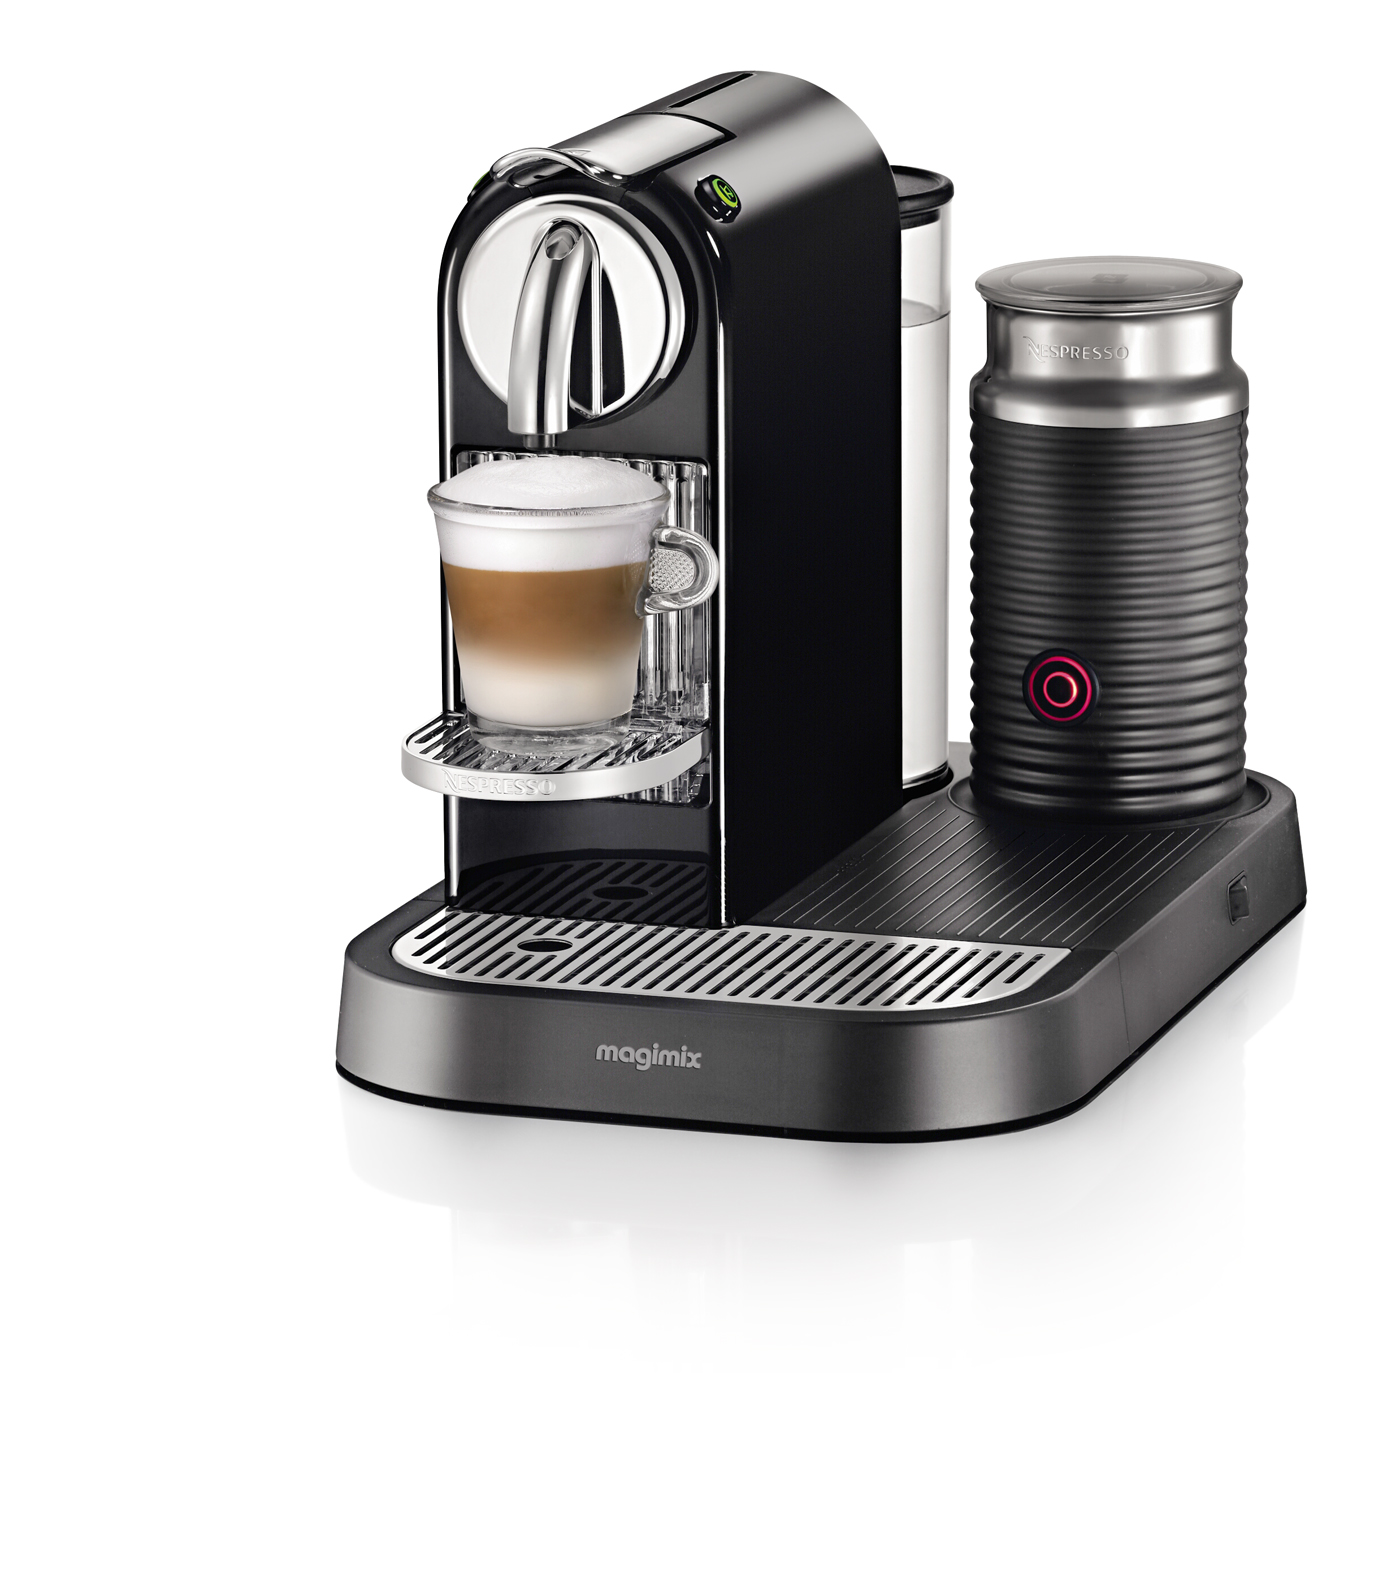 Coffee Makers From Asda : Father s Day gift guide - Parentdish UK